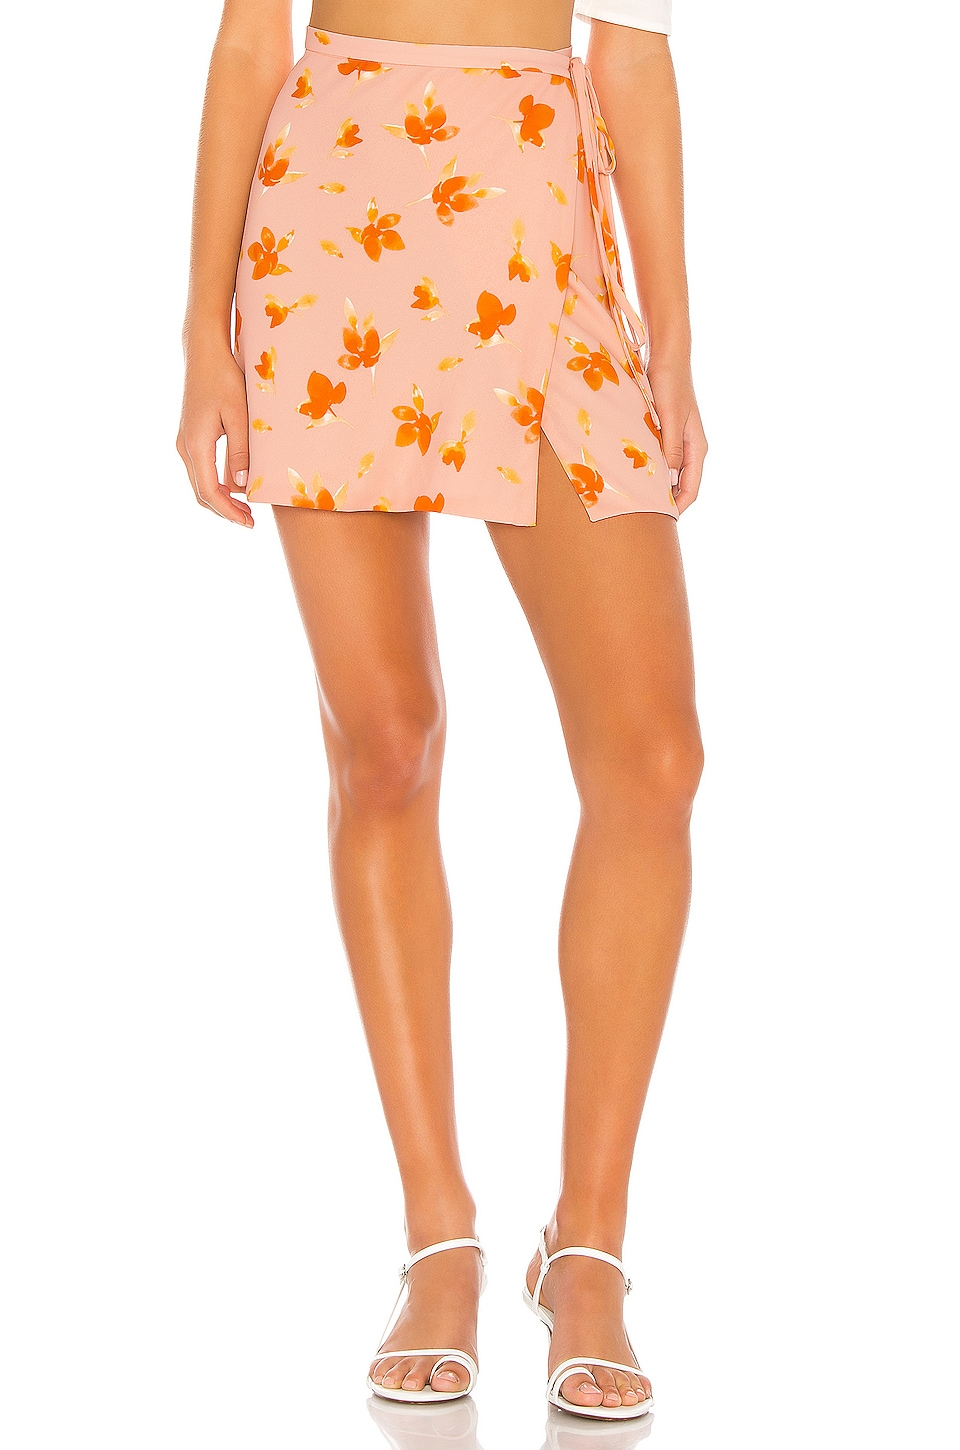 Endless Summer Sassy Skirt in Floral Punch